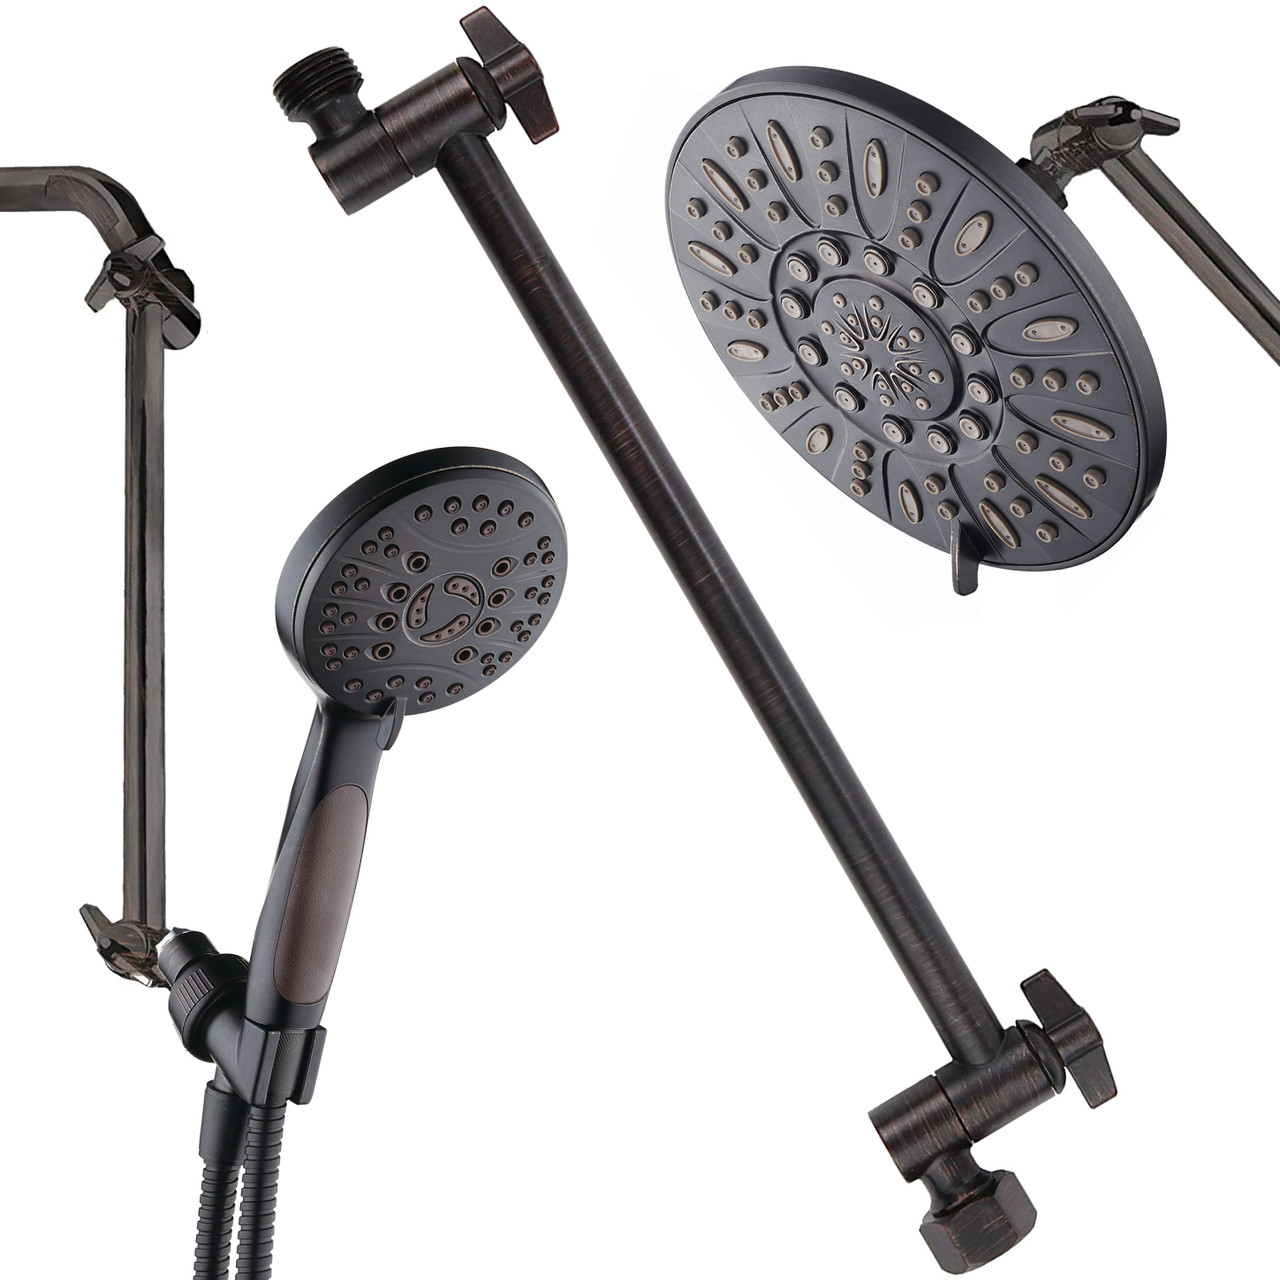 Picture of: Hotel Spa 11 Solid Brass Adjustable Shower Extension Arm With Lock Joints Lower Or Raise Any Rain Or Handheld Showerhead To Your Height Angle 2 Foot Range Universal Connection Oil